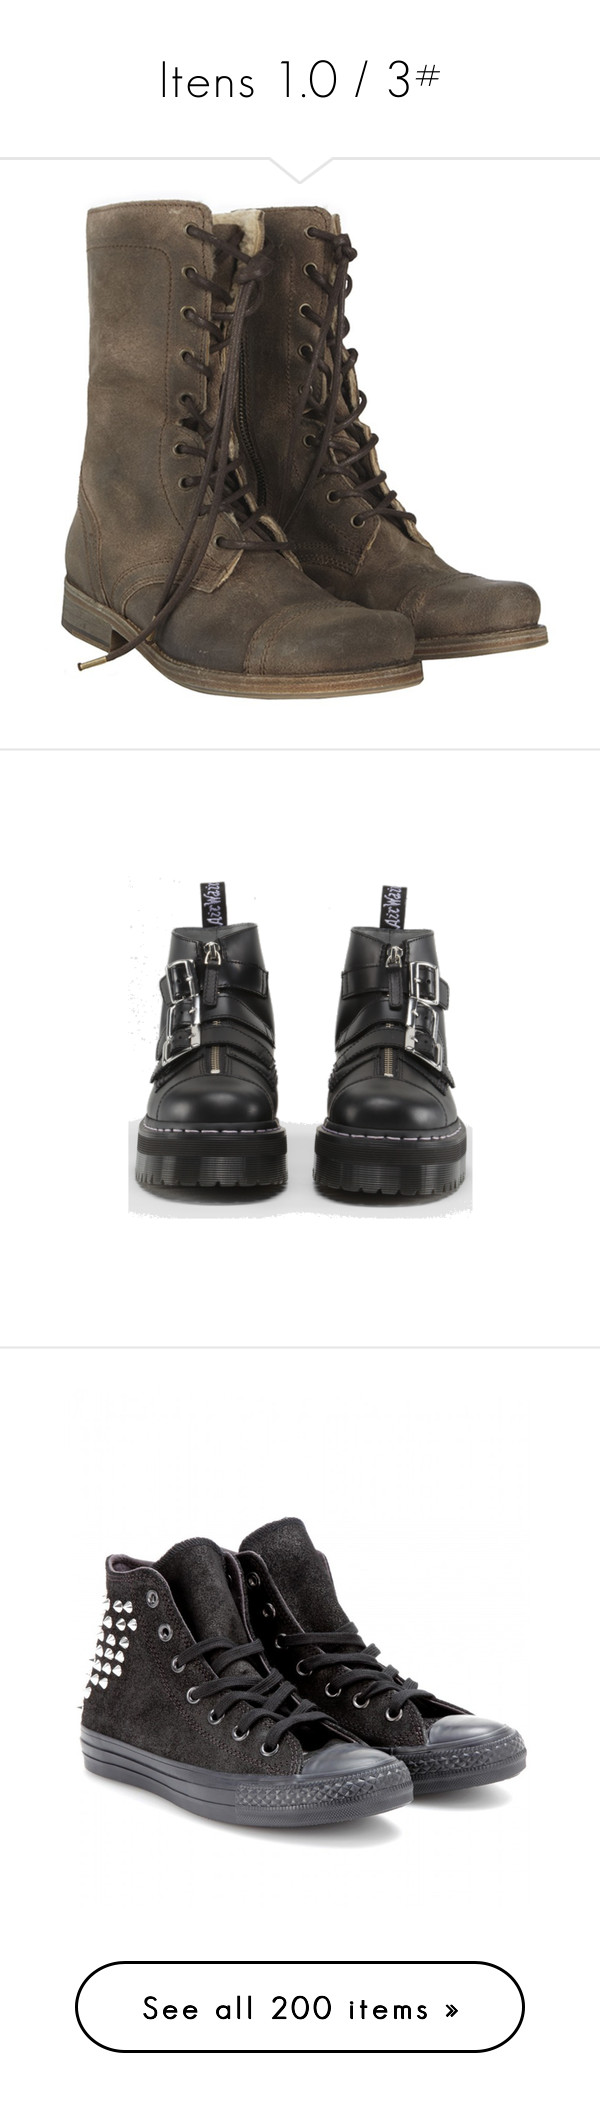 Itens 1 0 3 By Letycalazans On Polyvore Featuring Shoes Boots